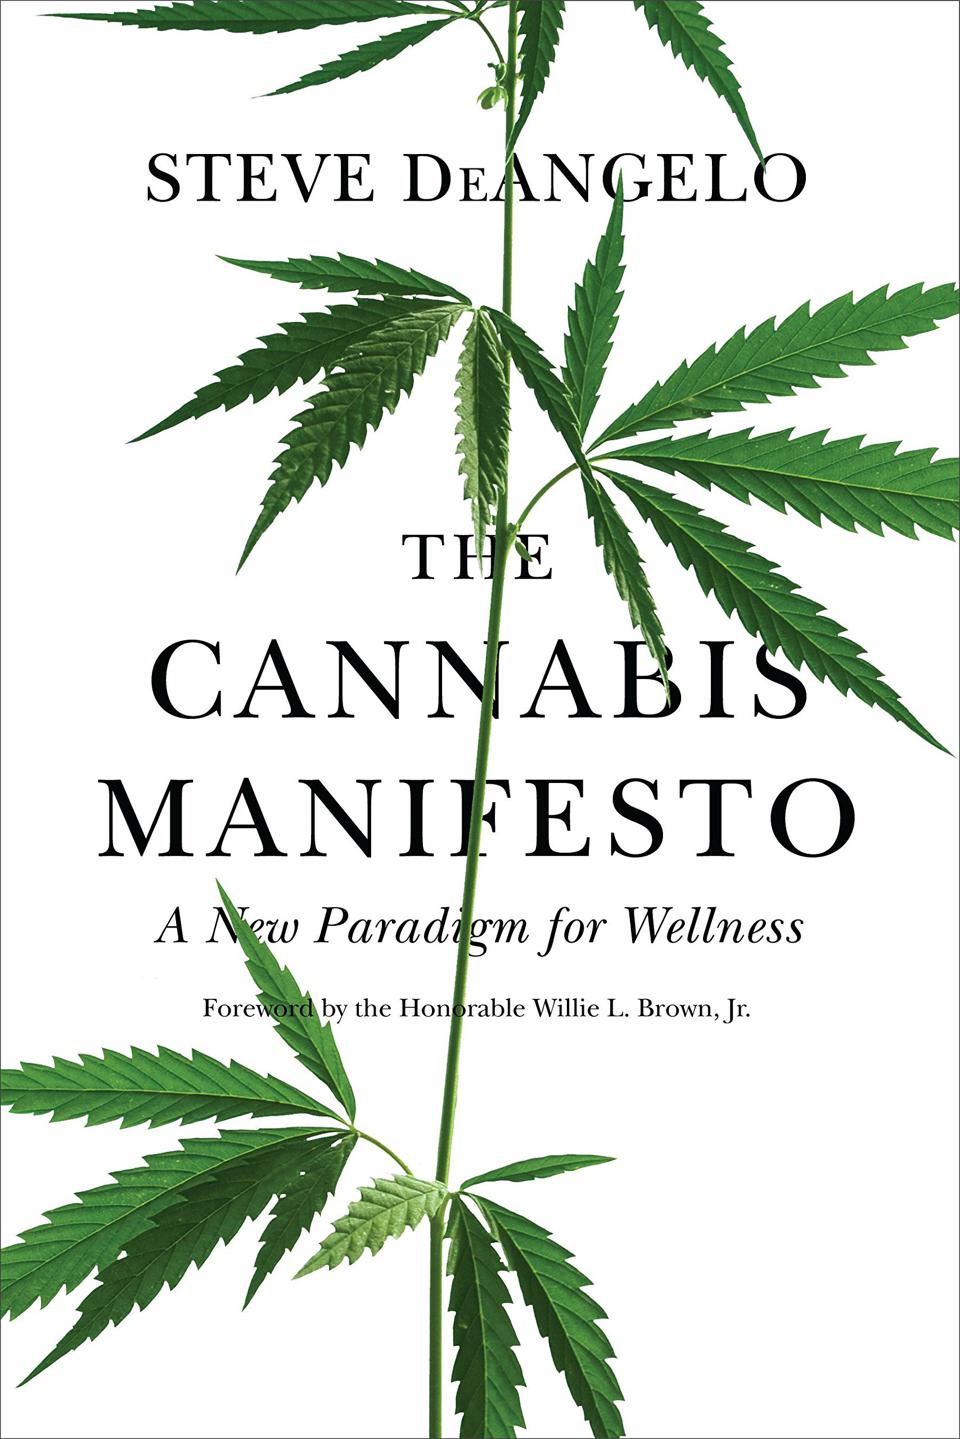 The Cannabis Manifesto, Steve DeAngelo, cannabis books, cannabis wellness